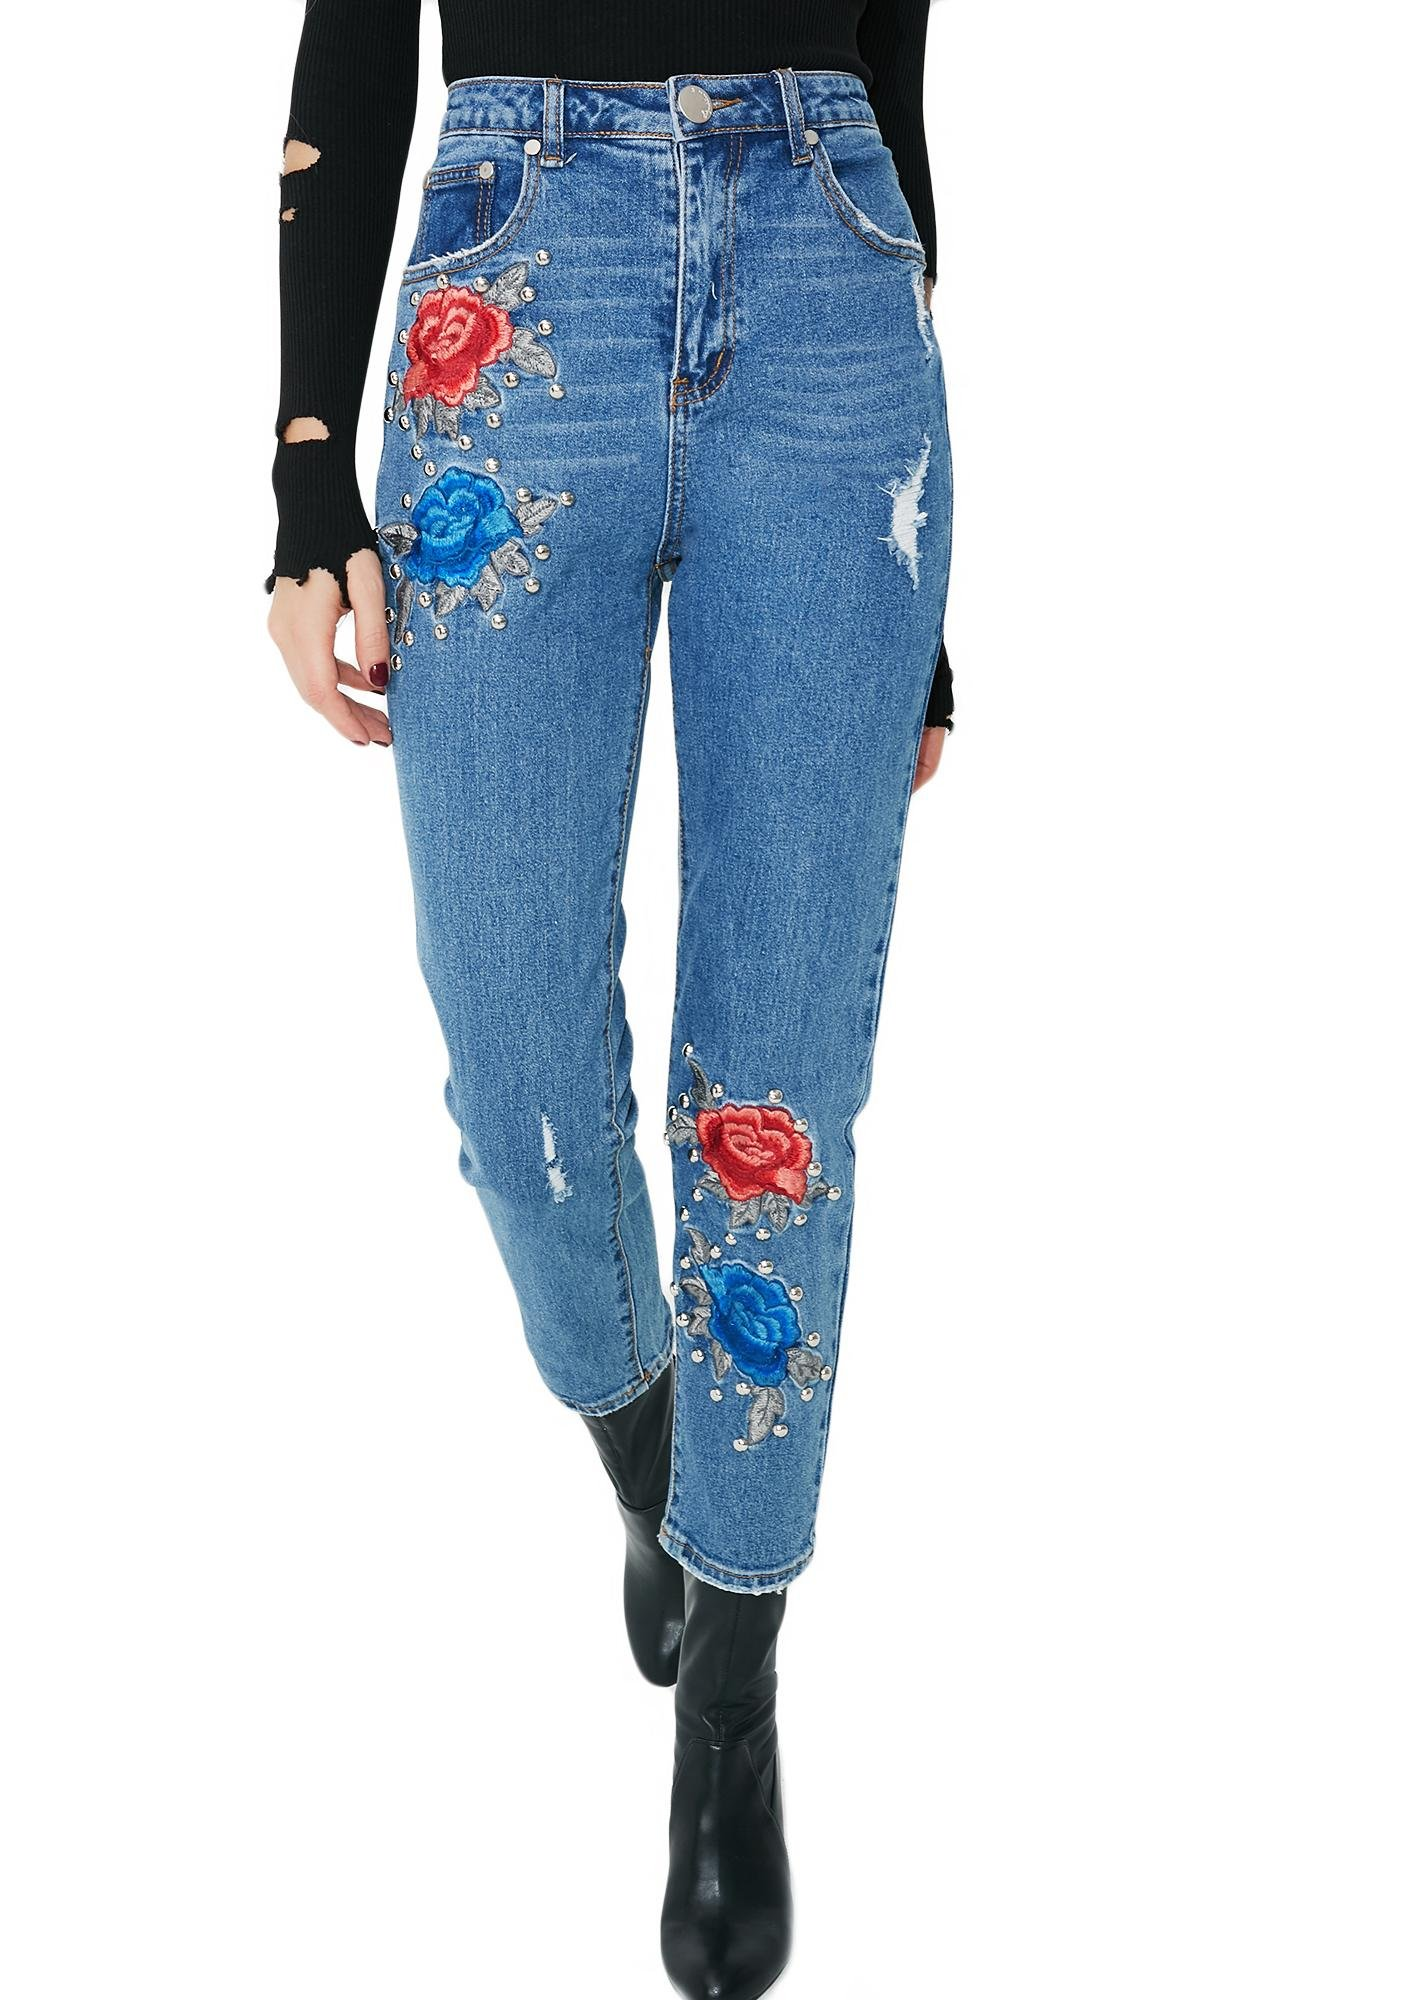 By My Side Floral Studded Jeans